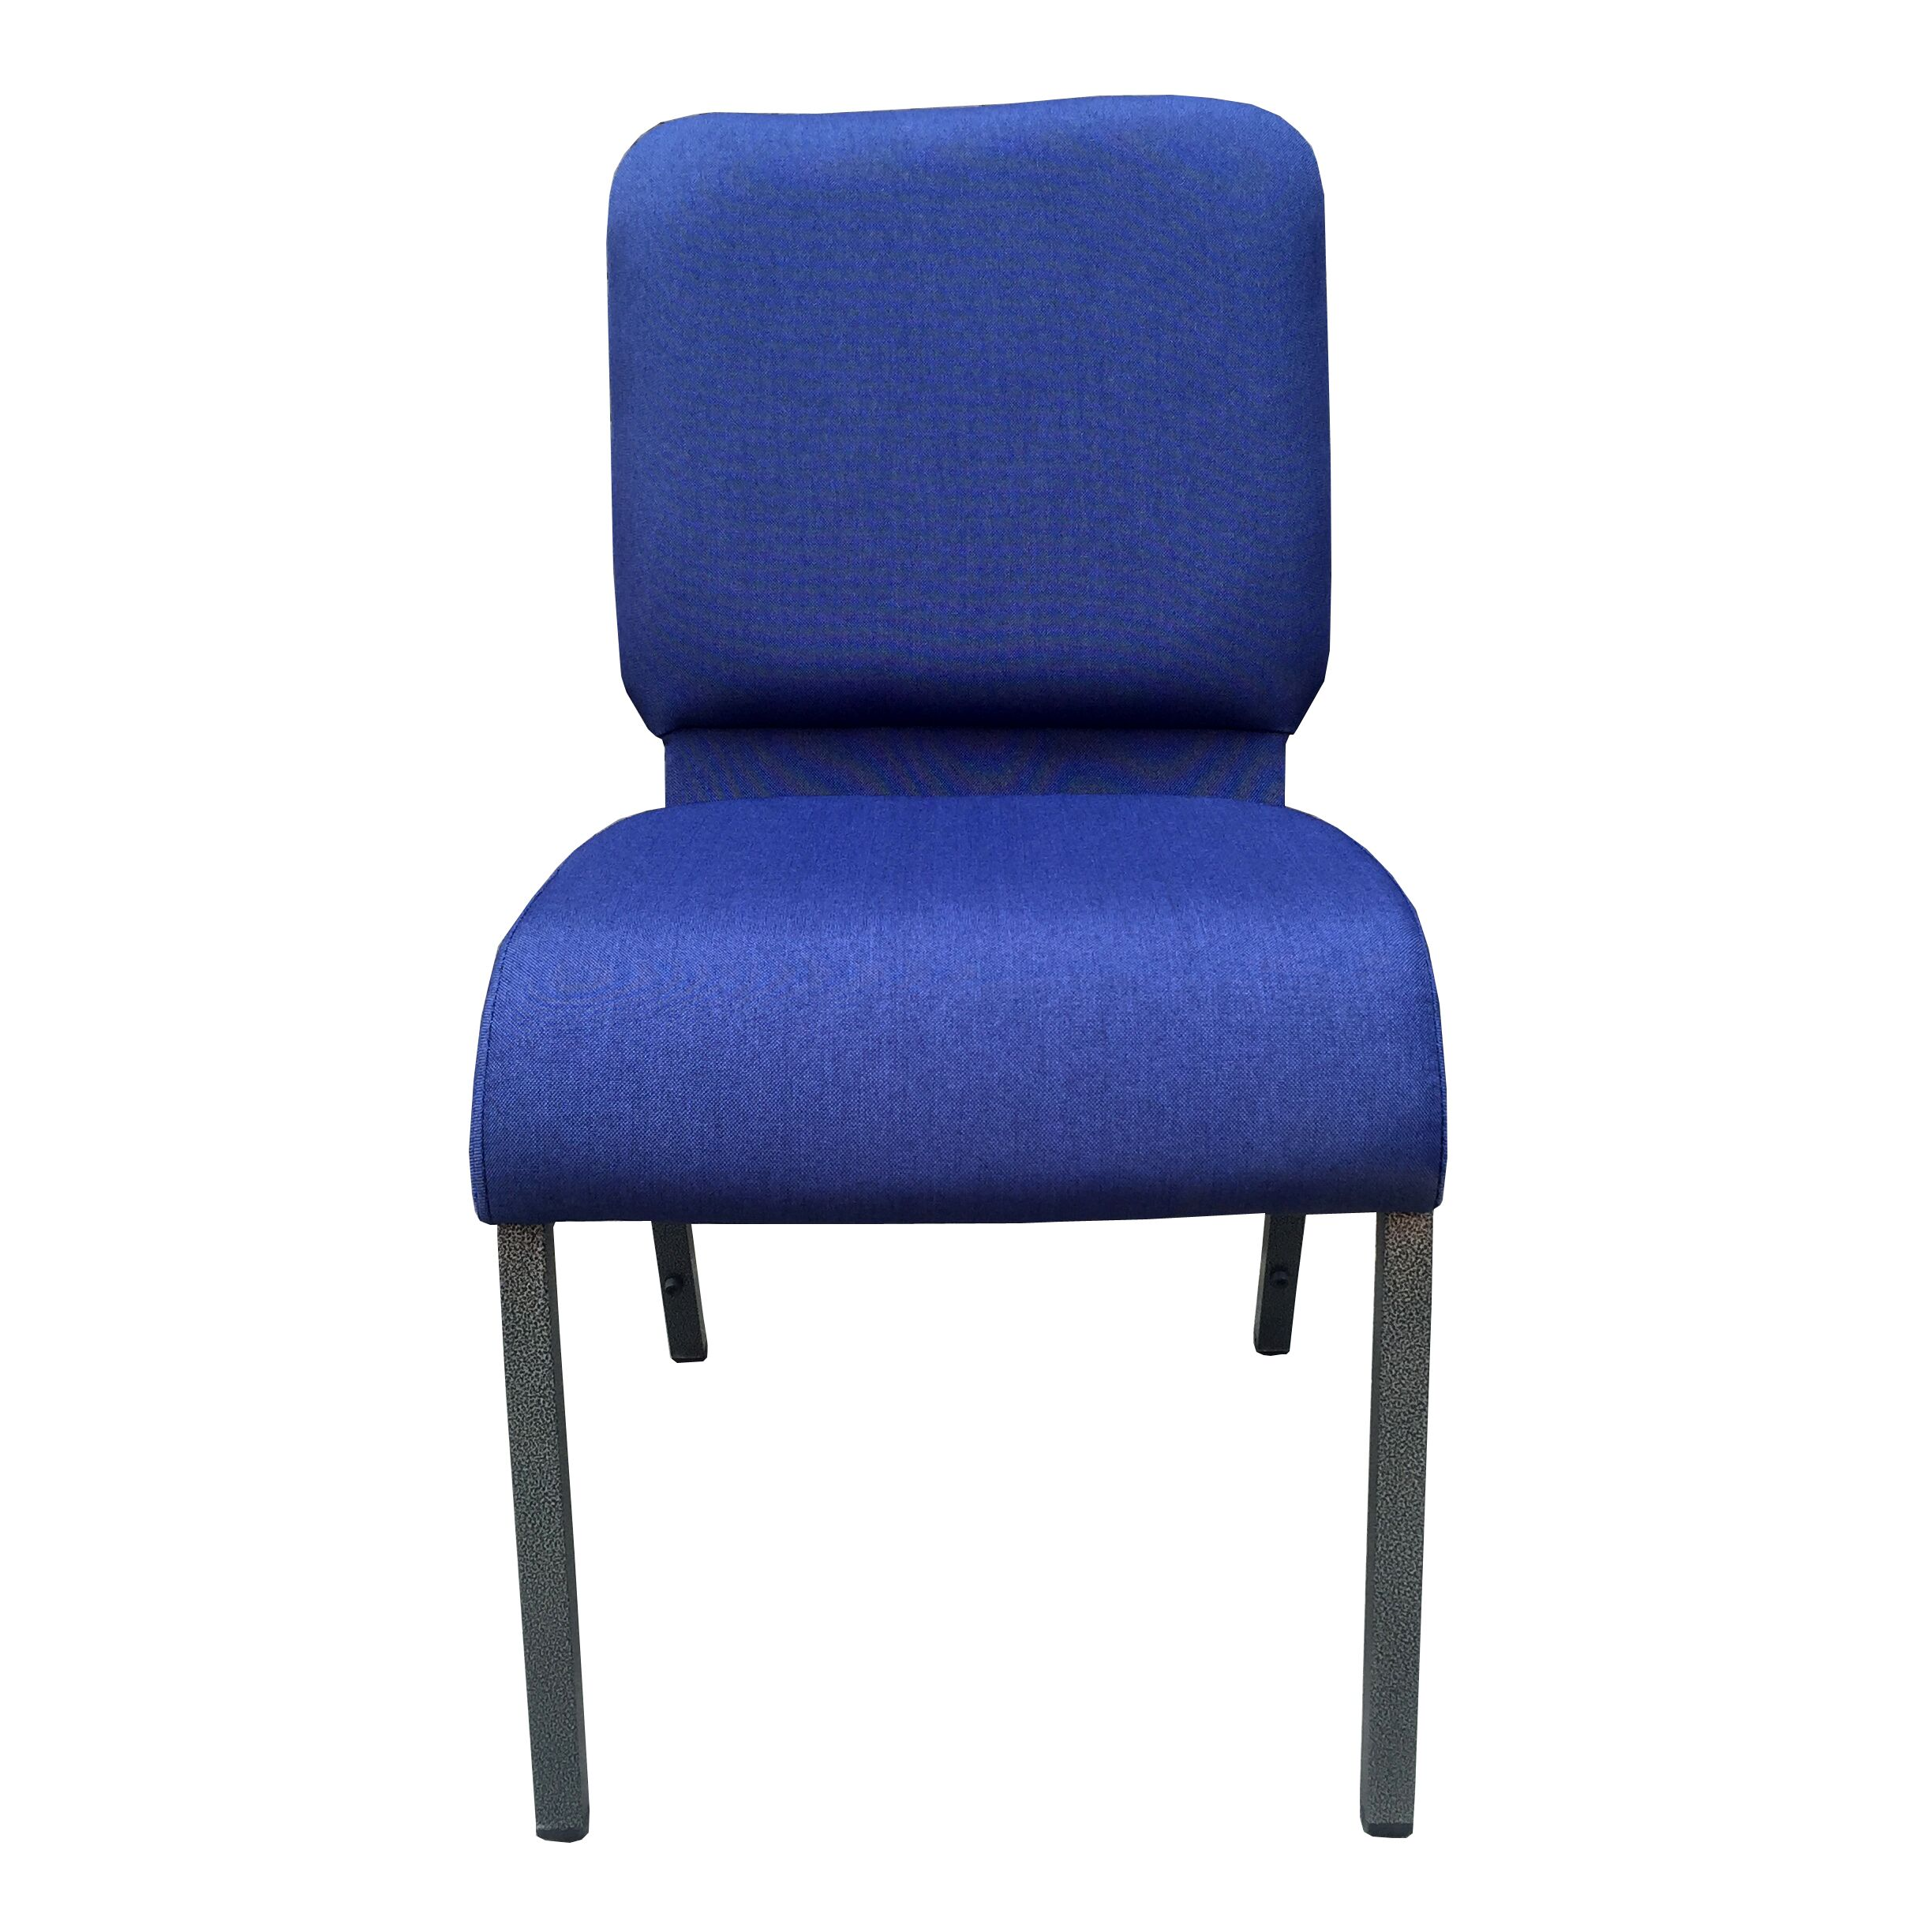 OEM manufacturer Metal Church Chairs With Kneeler -